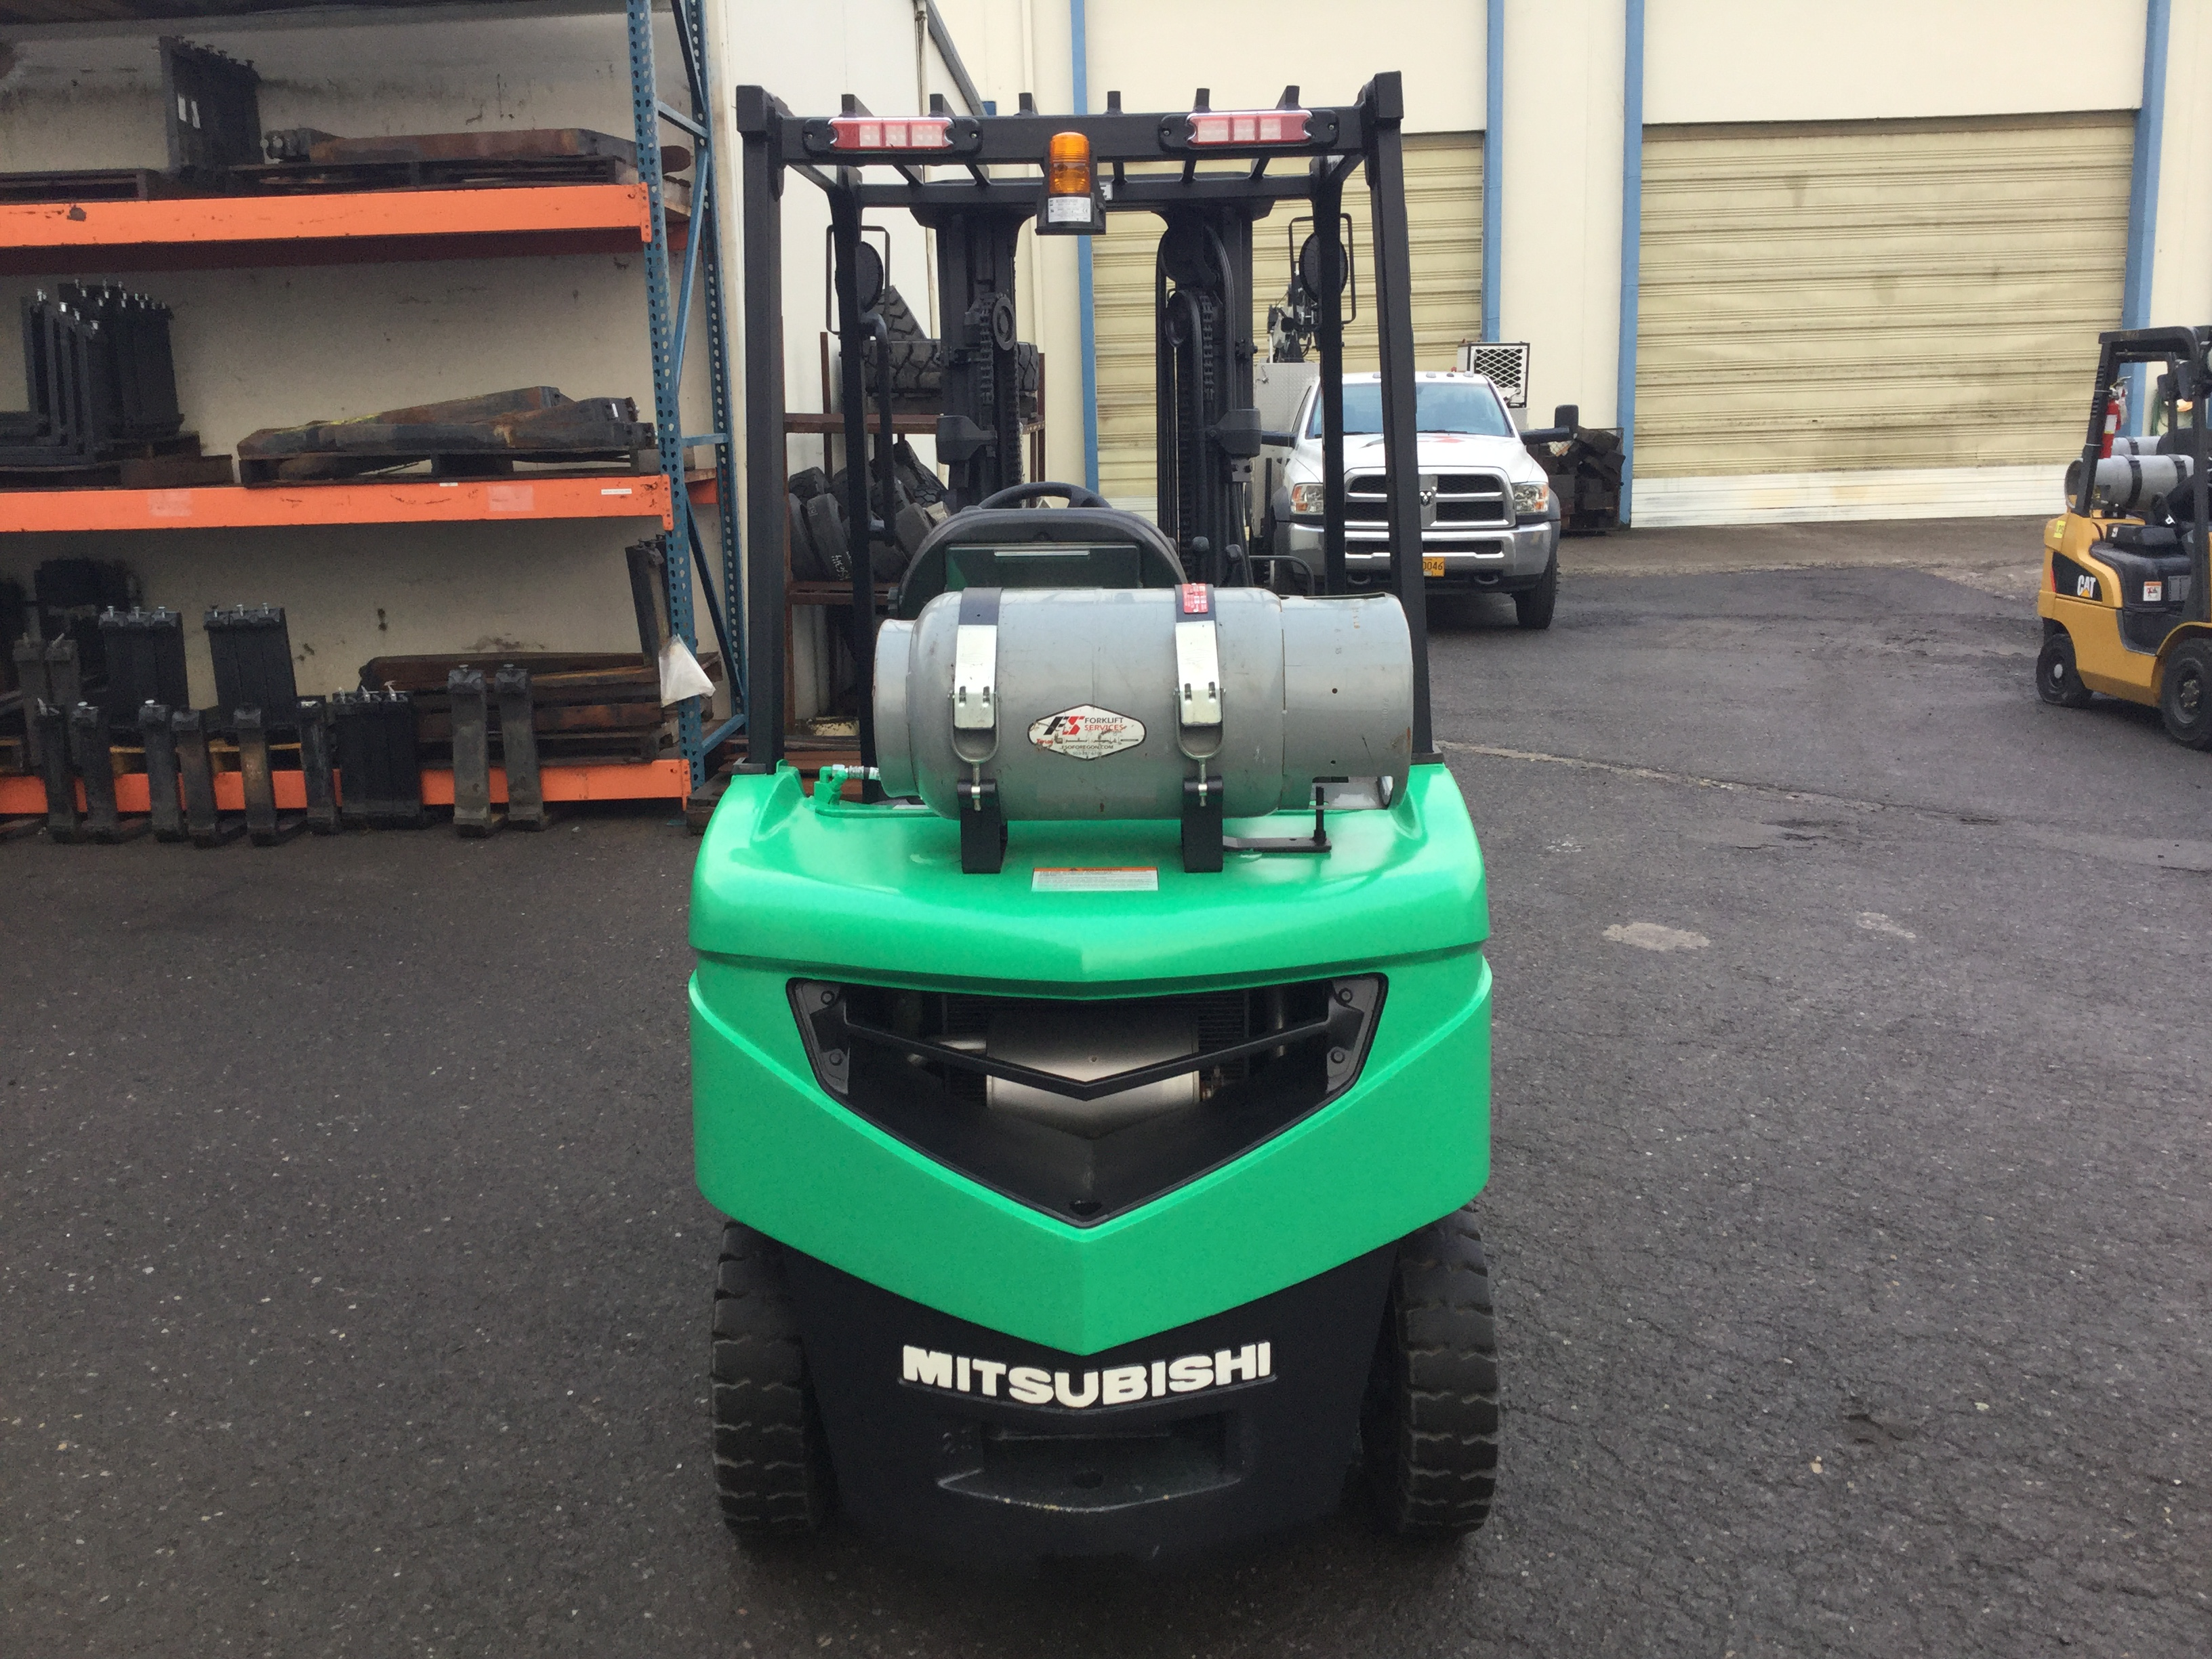 inc trucks forklifts industrial showroom showrooms and maintainco toyota mitsubishi lift equipment